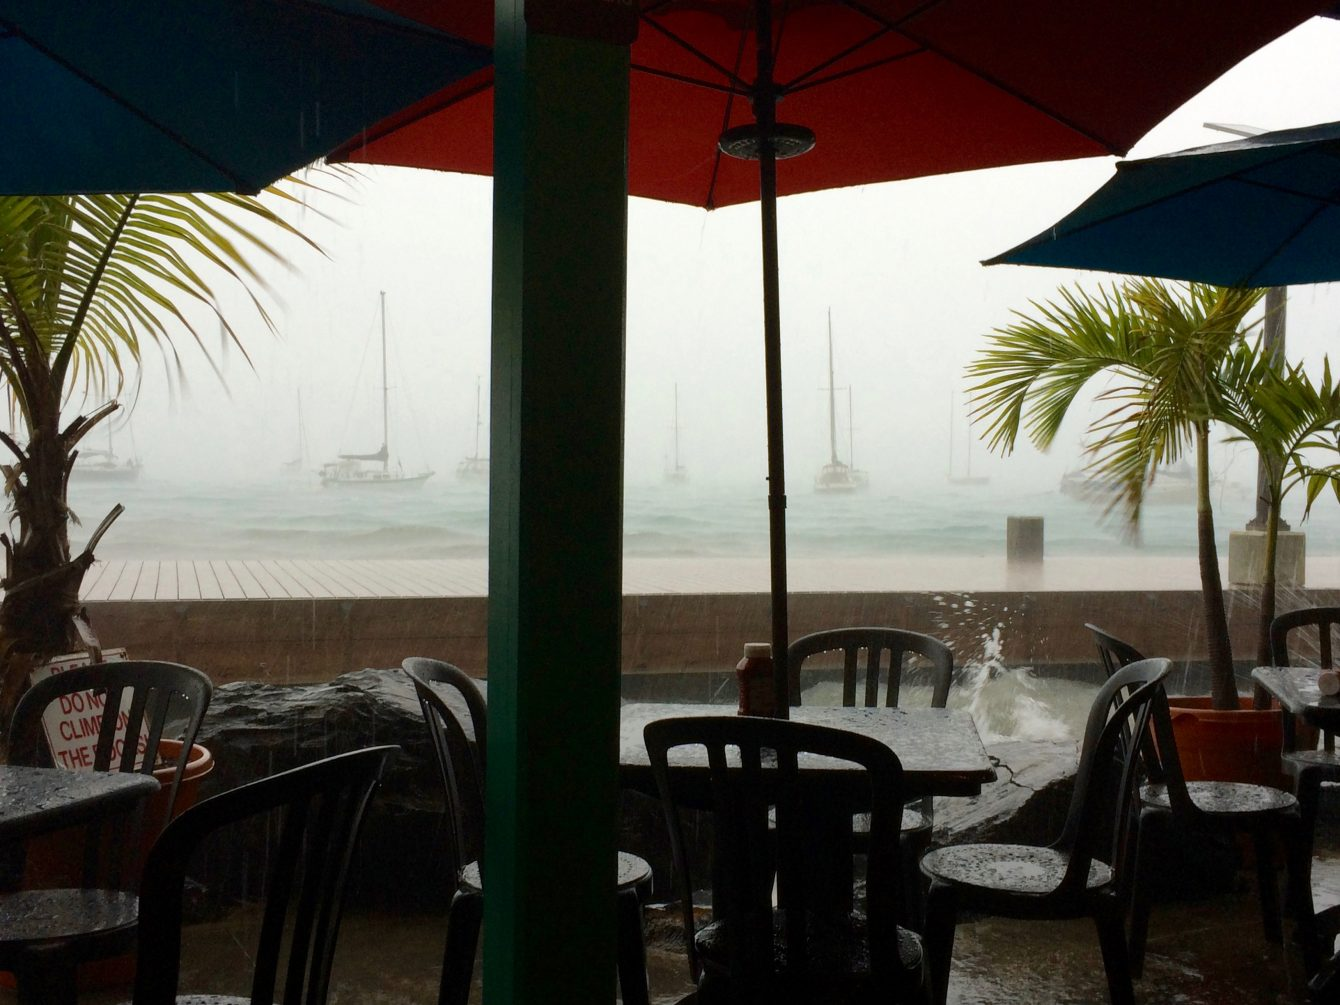 Have some lunch at Rum Runners, and watch the storm whip by!